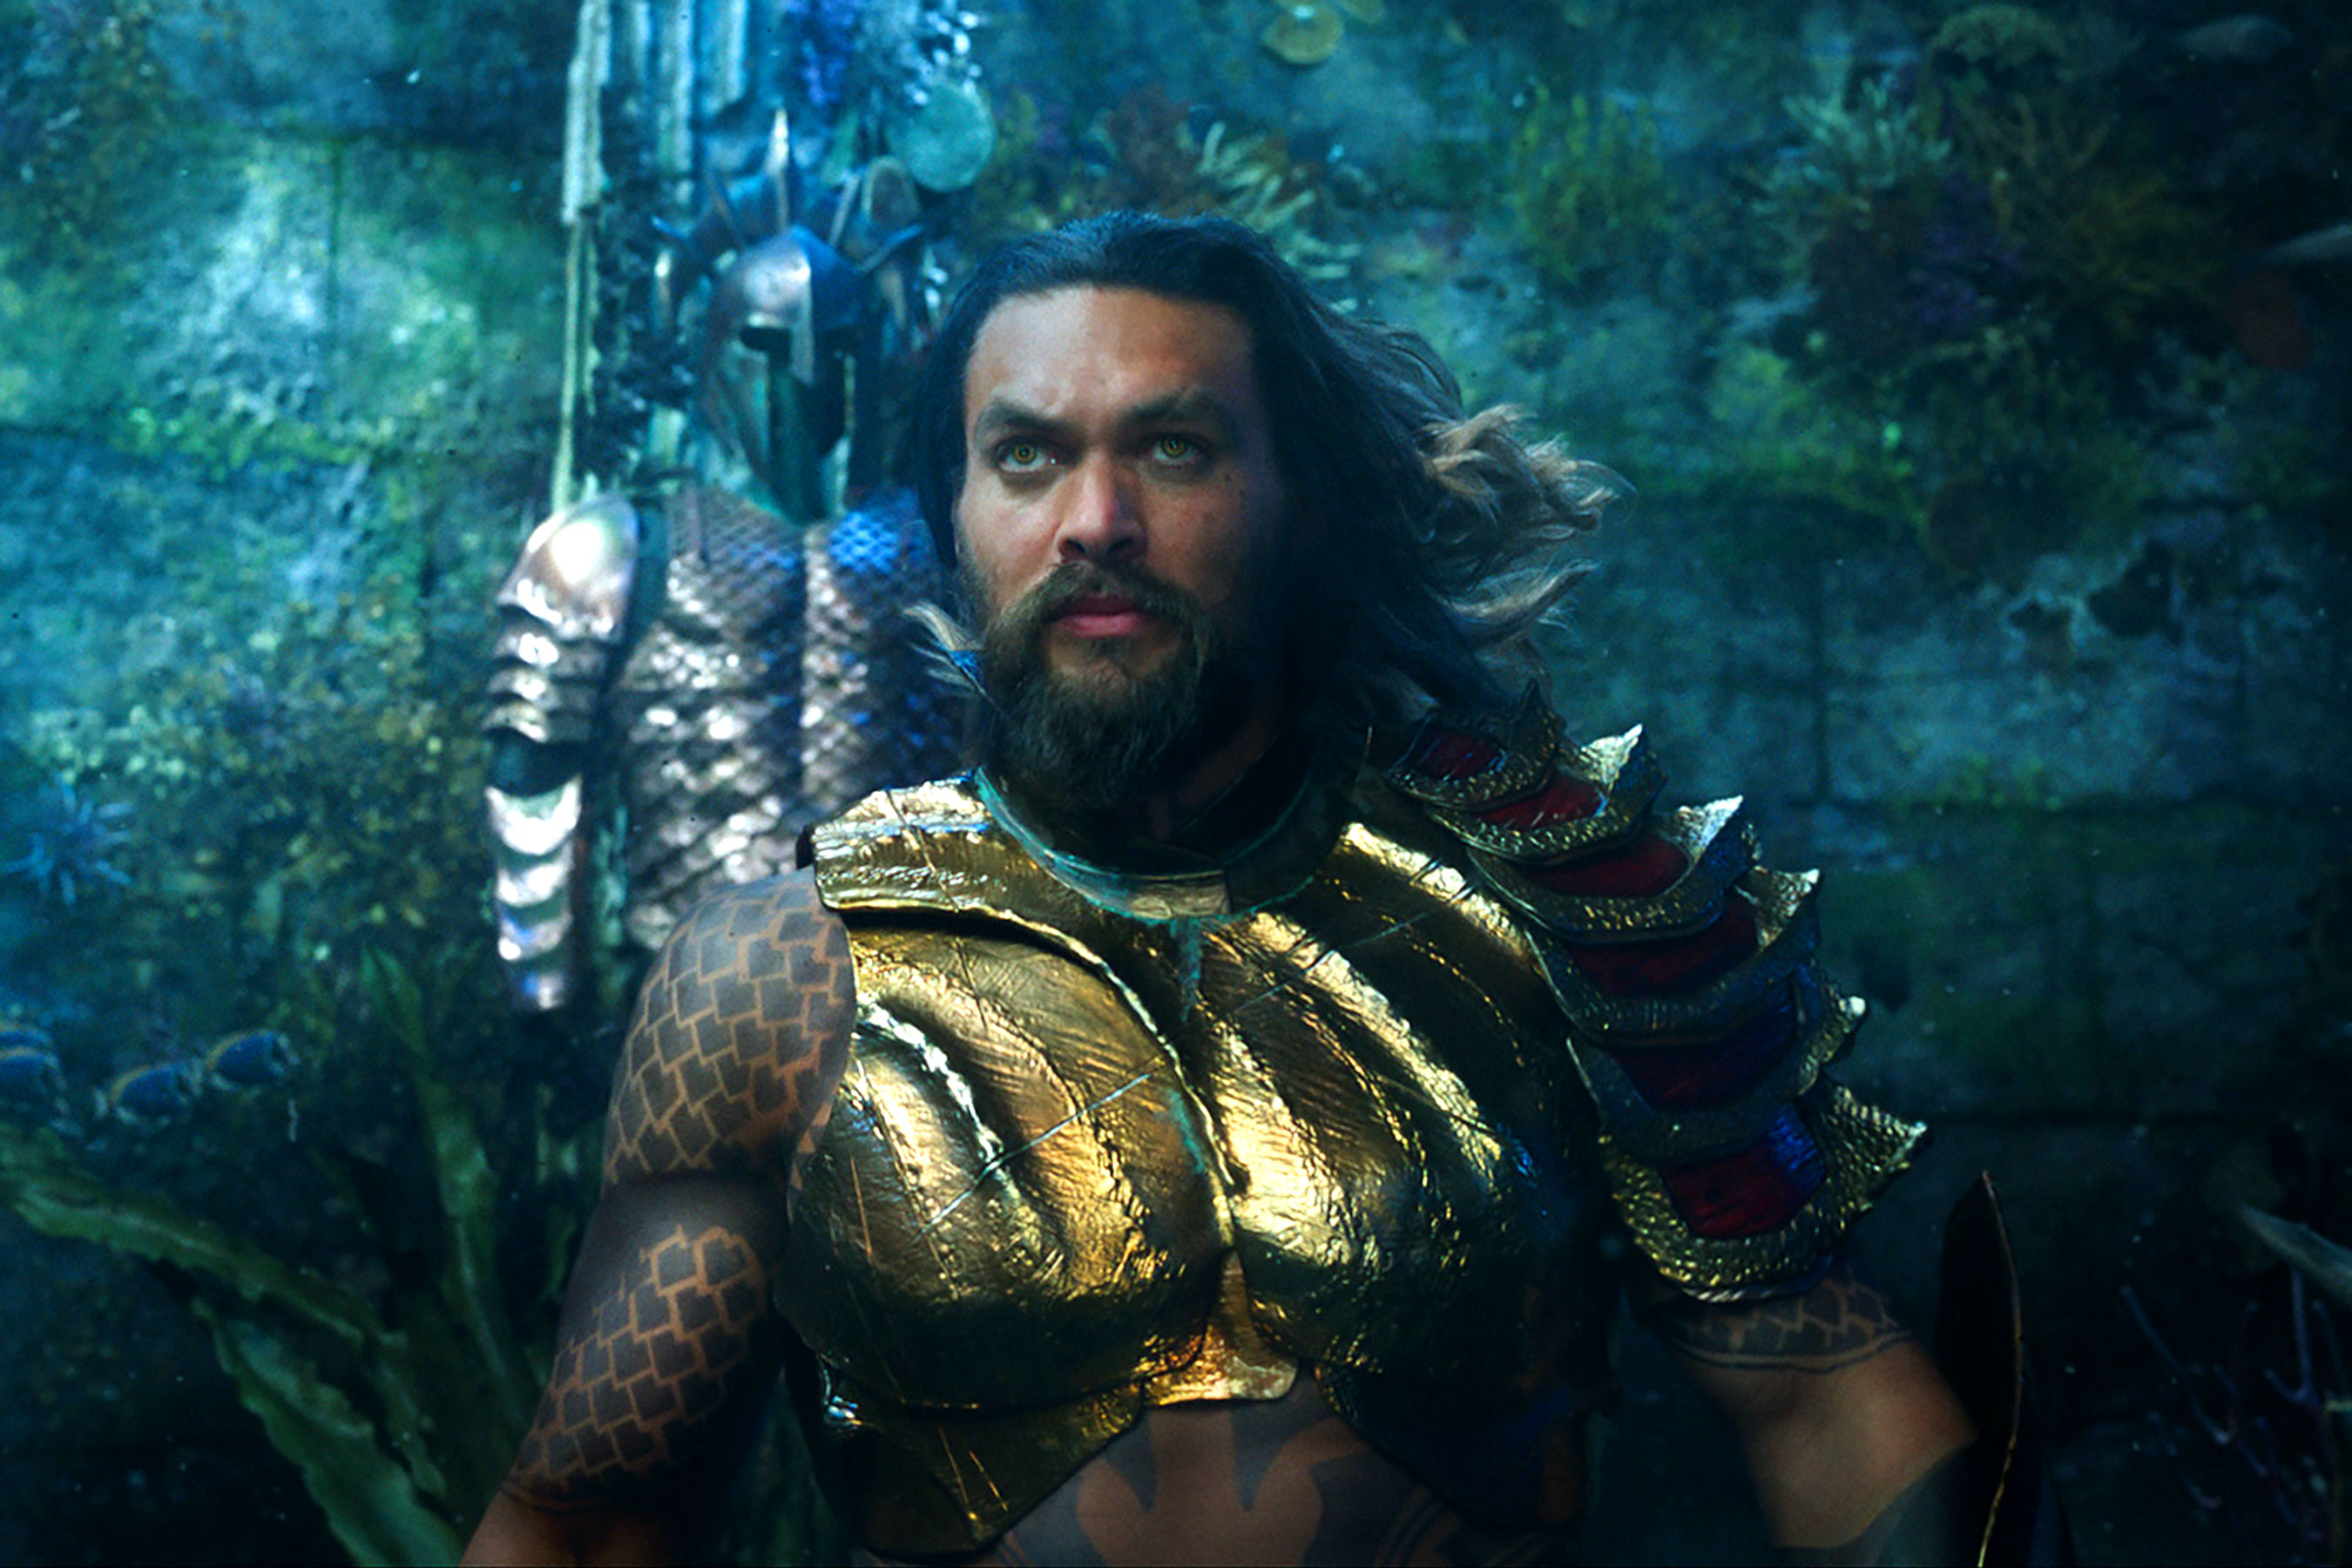 Aquaman EW review: Jason Momoa, Amber Heard film can't decide if it wants to be silly or serious